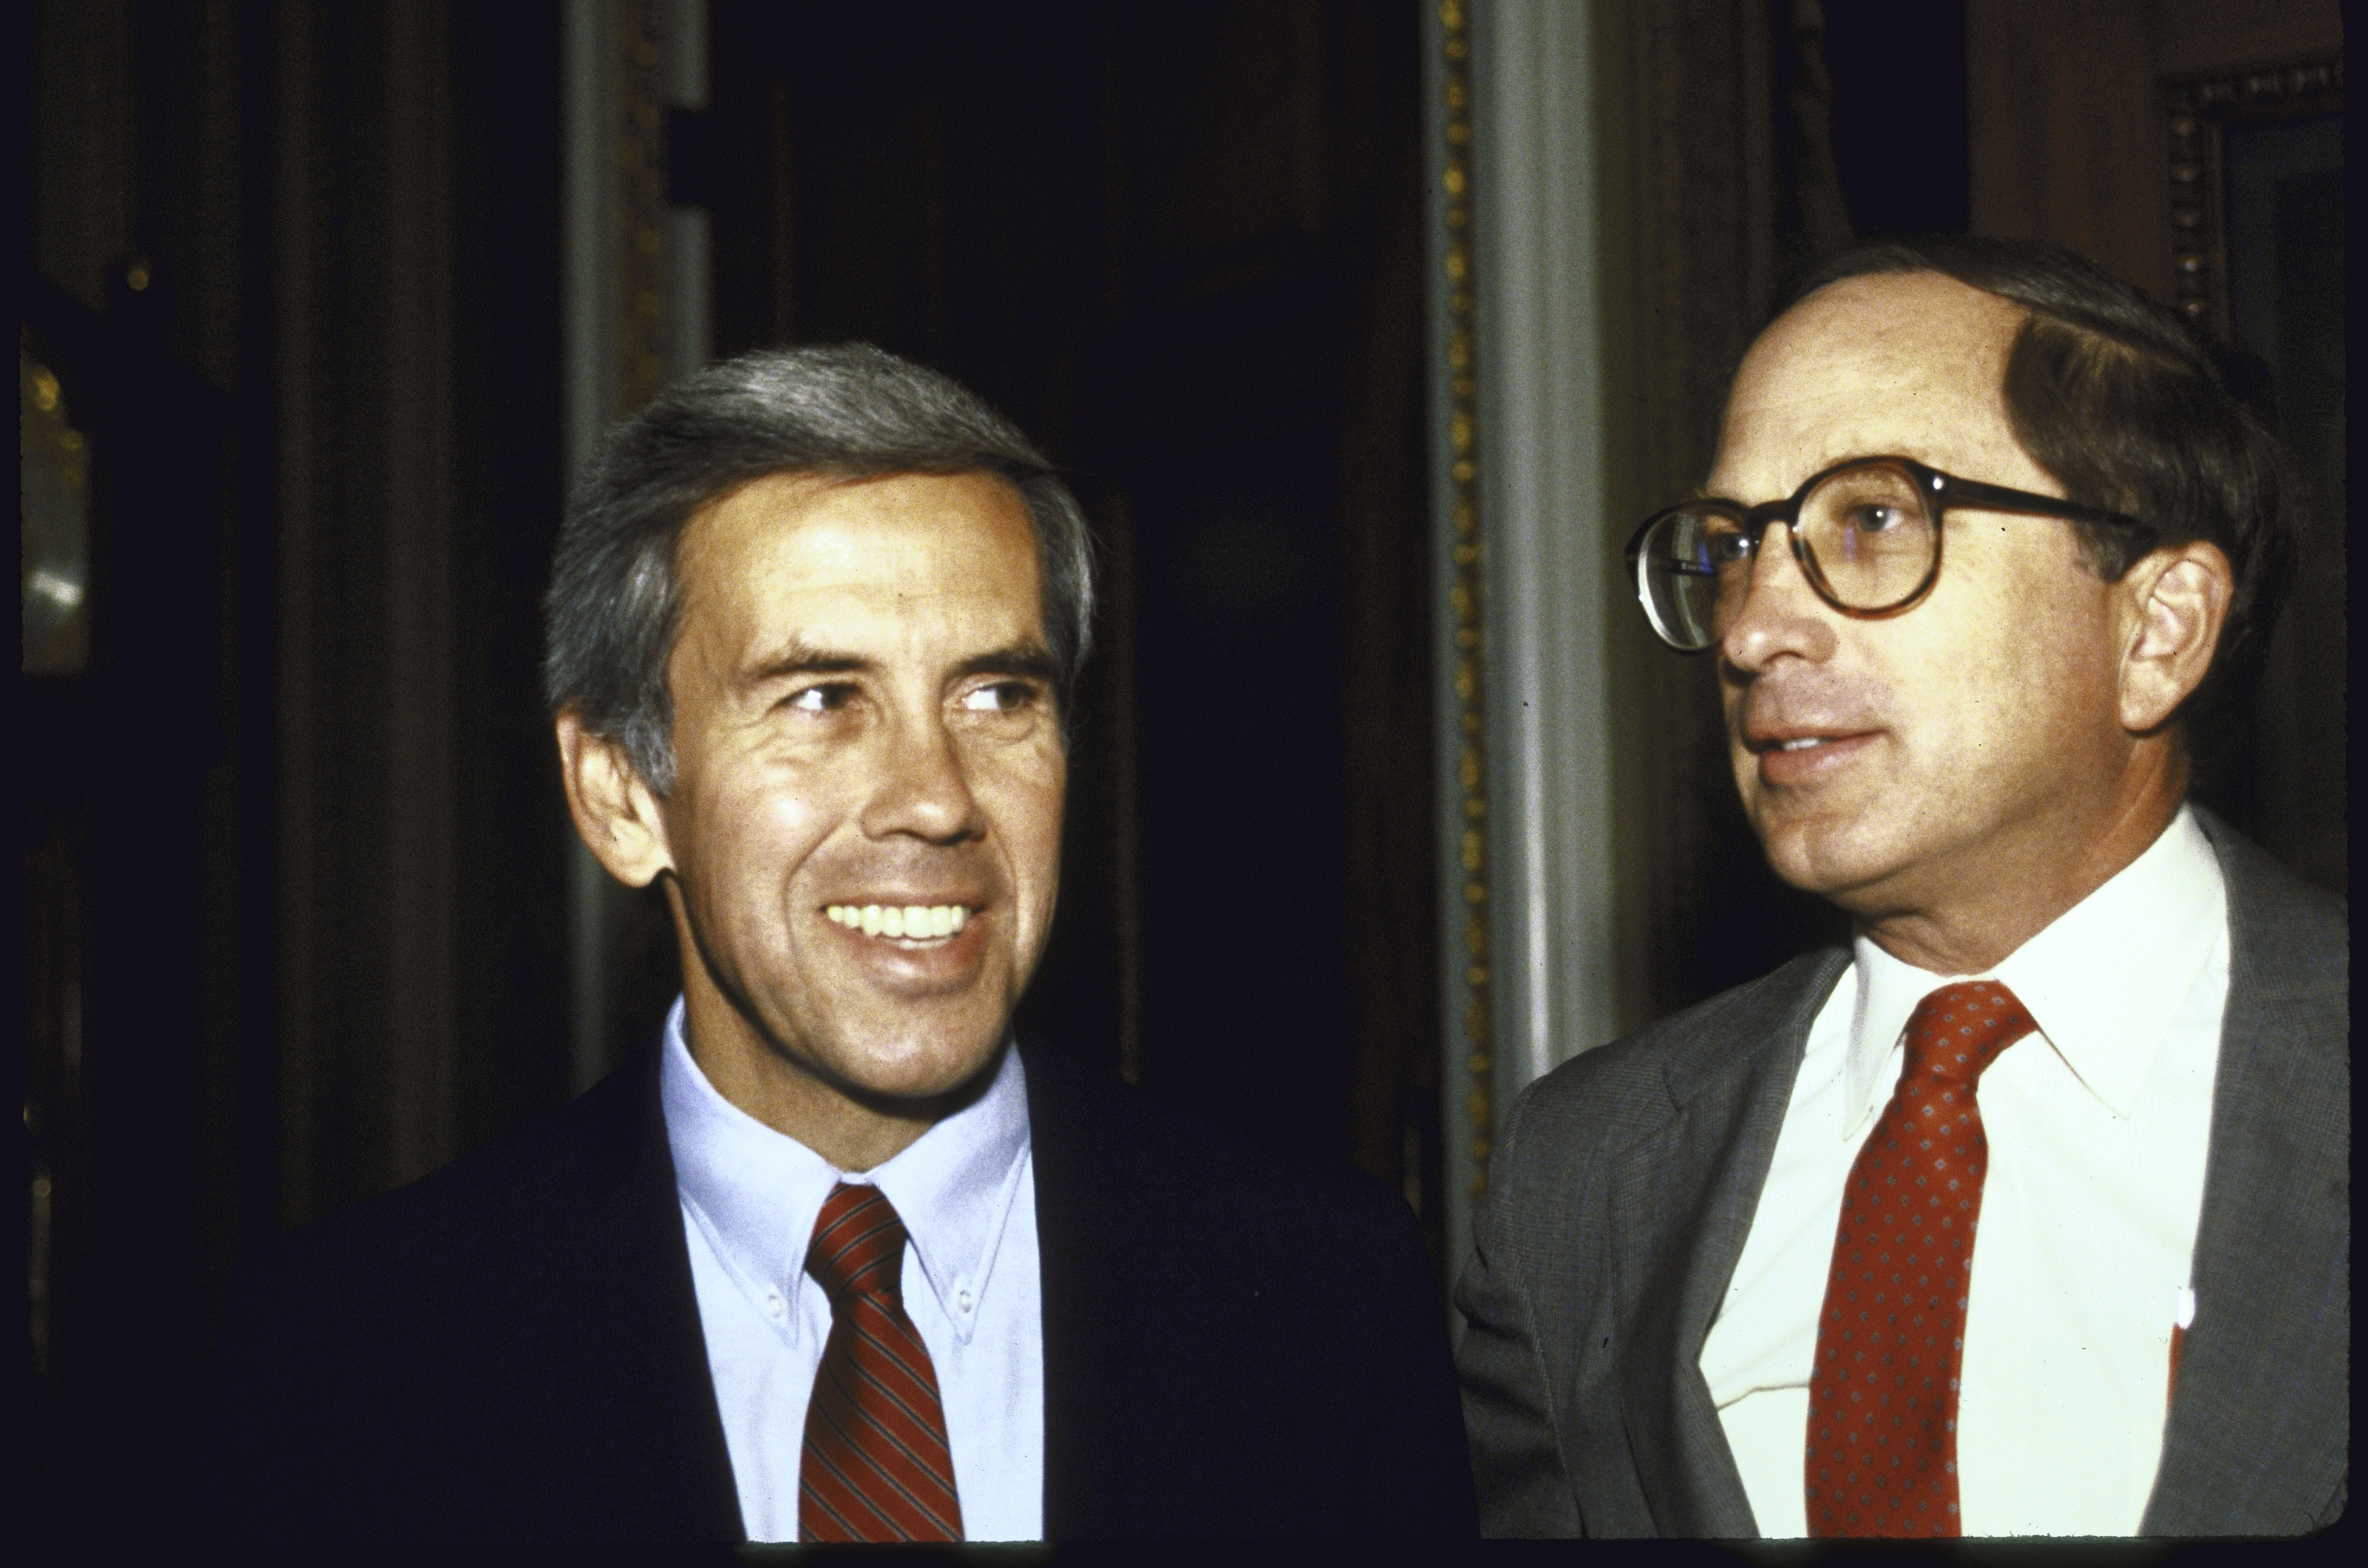 Richard Lugar, left, and Sam Nunn, worked collaboratively on legislation when they served in the U.S. Senate.